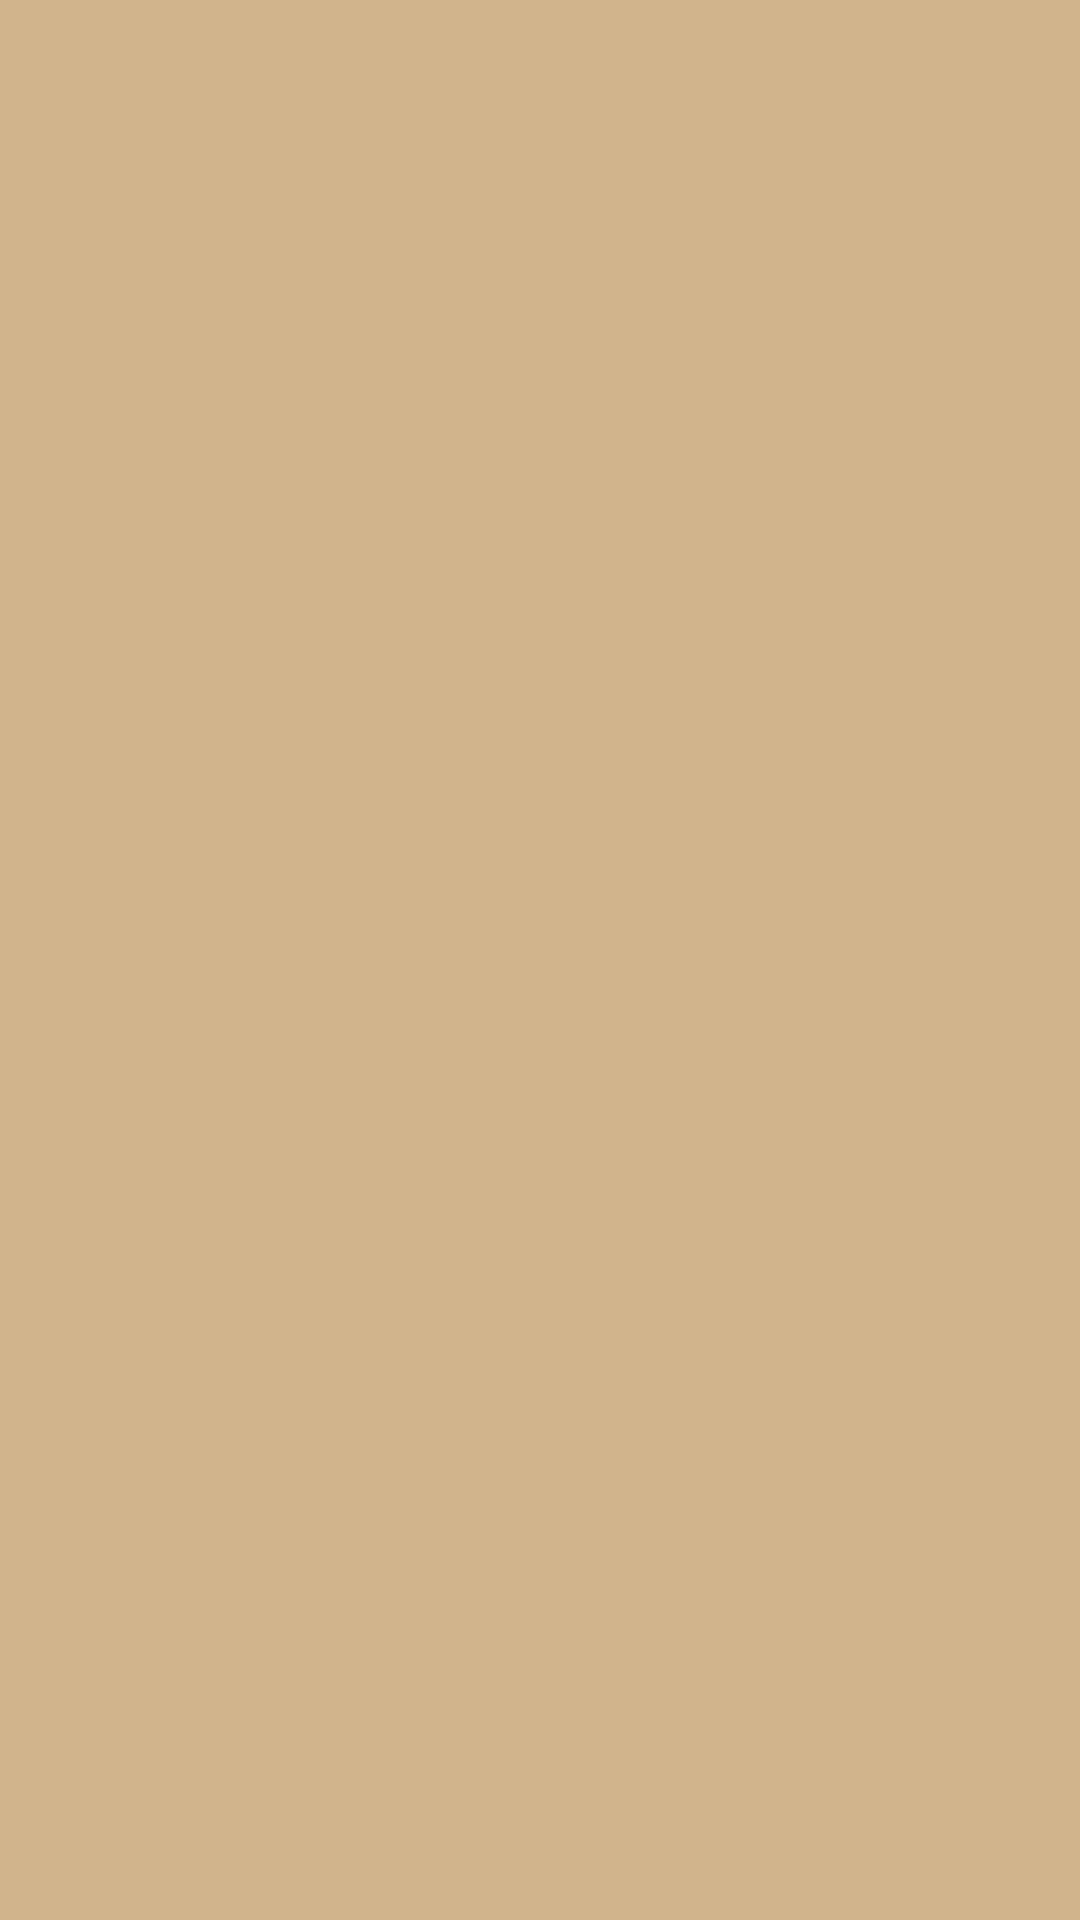 1080x1920 Tan Solid Color Background